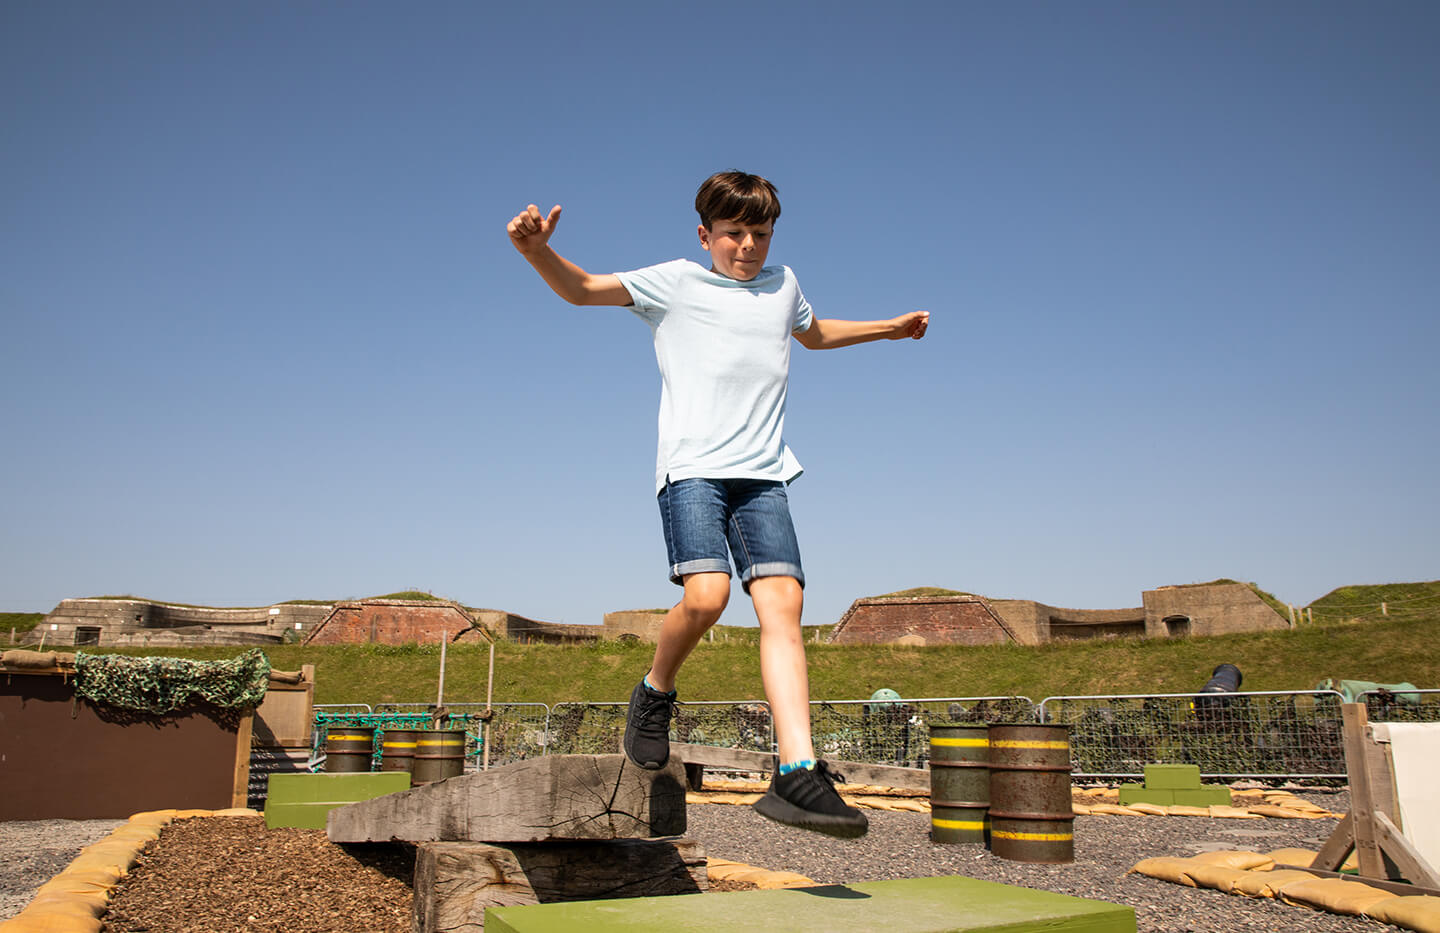 A boy leaping over an assault course